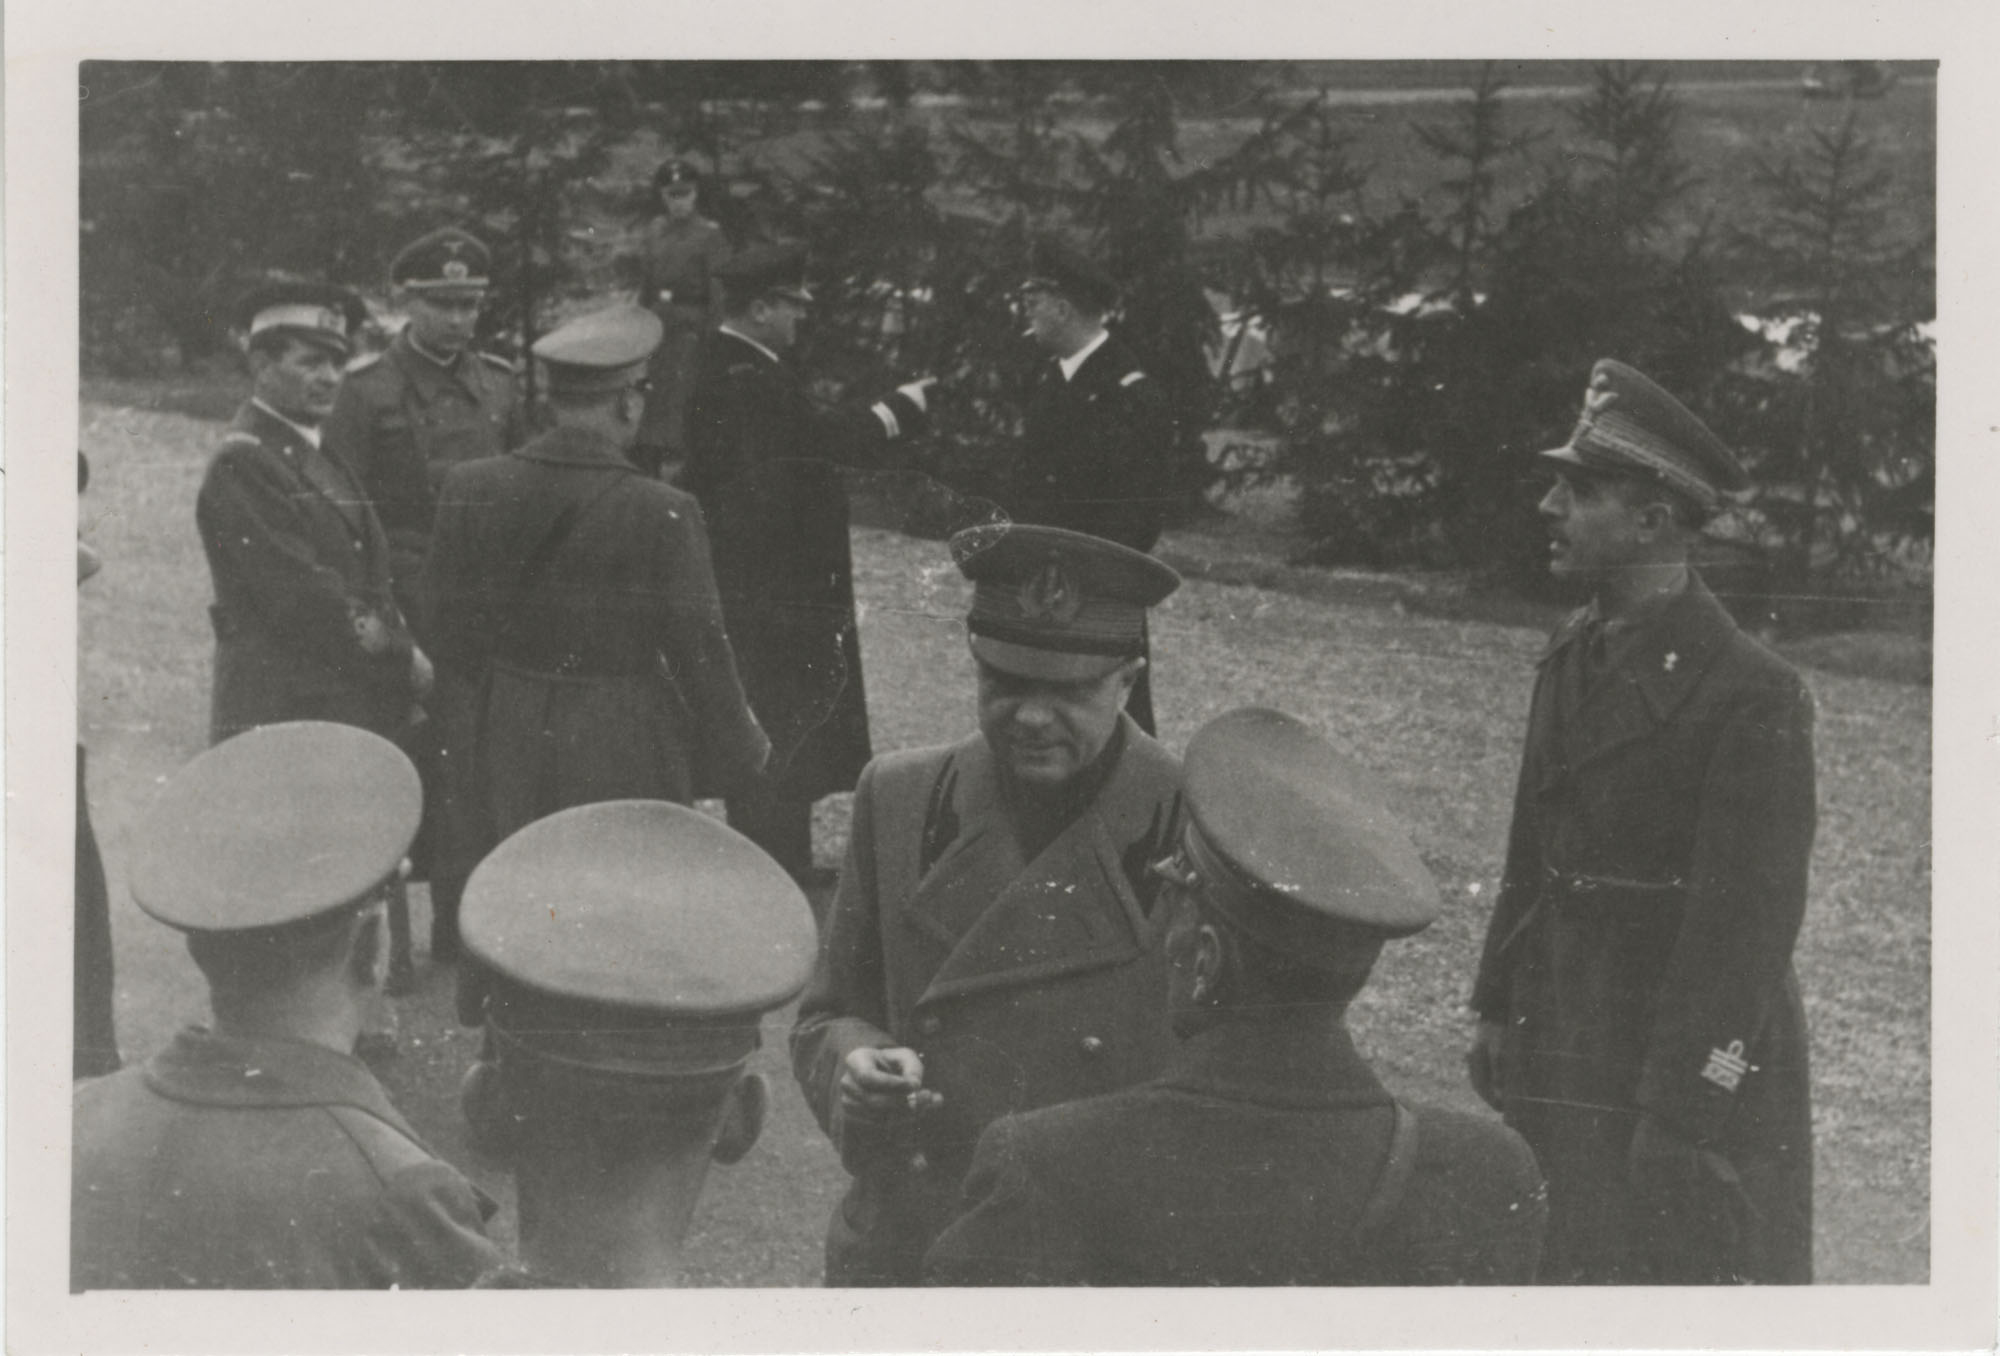 Mario Pansa greeting military personnel, Photograph 8